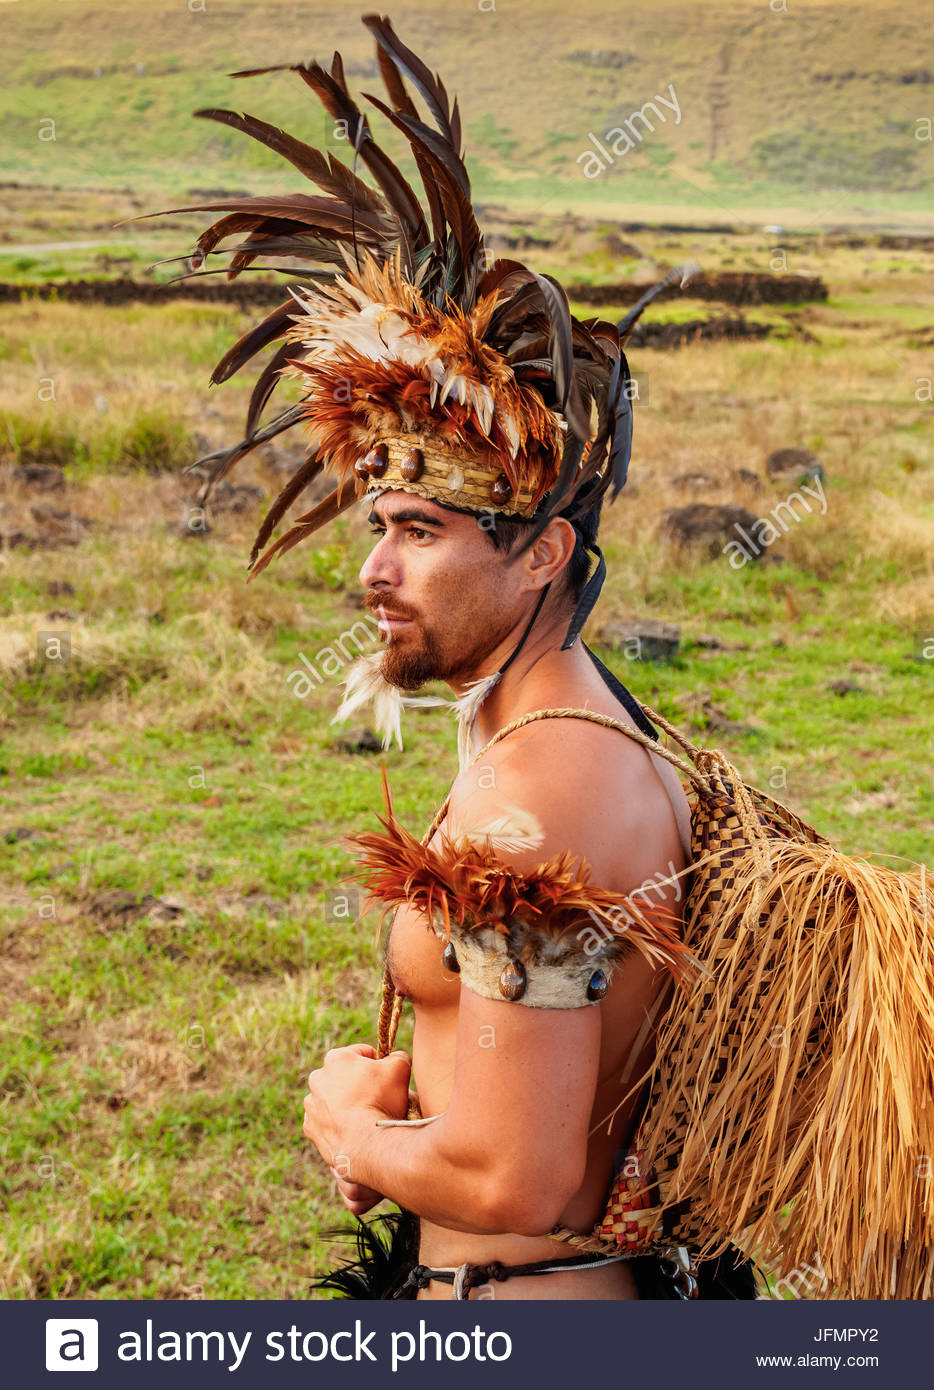 Native Rapa Nui man in tradititional costume at Ahu Tongariki, Rapa Nui National Park, Easter Island, Chile. MR - Stock Image